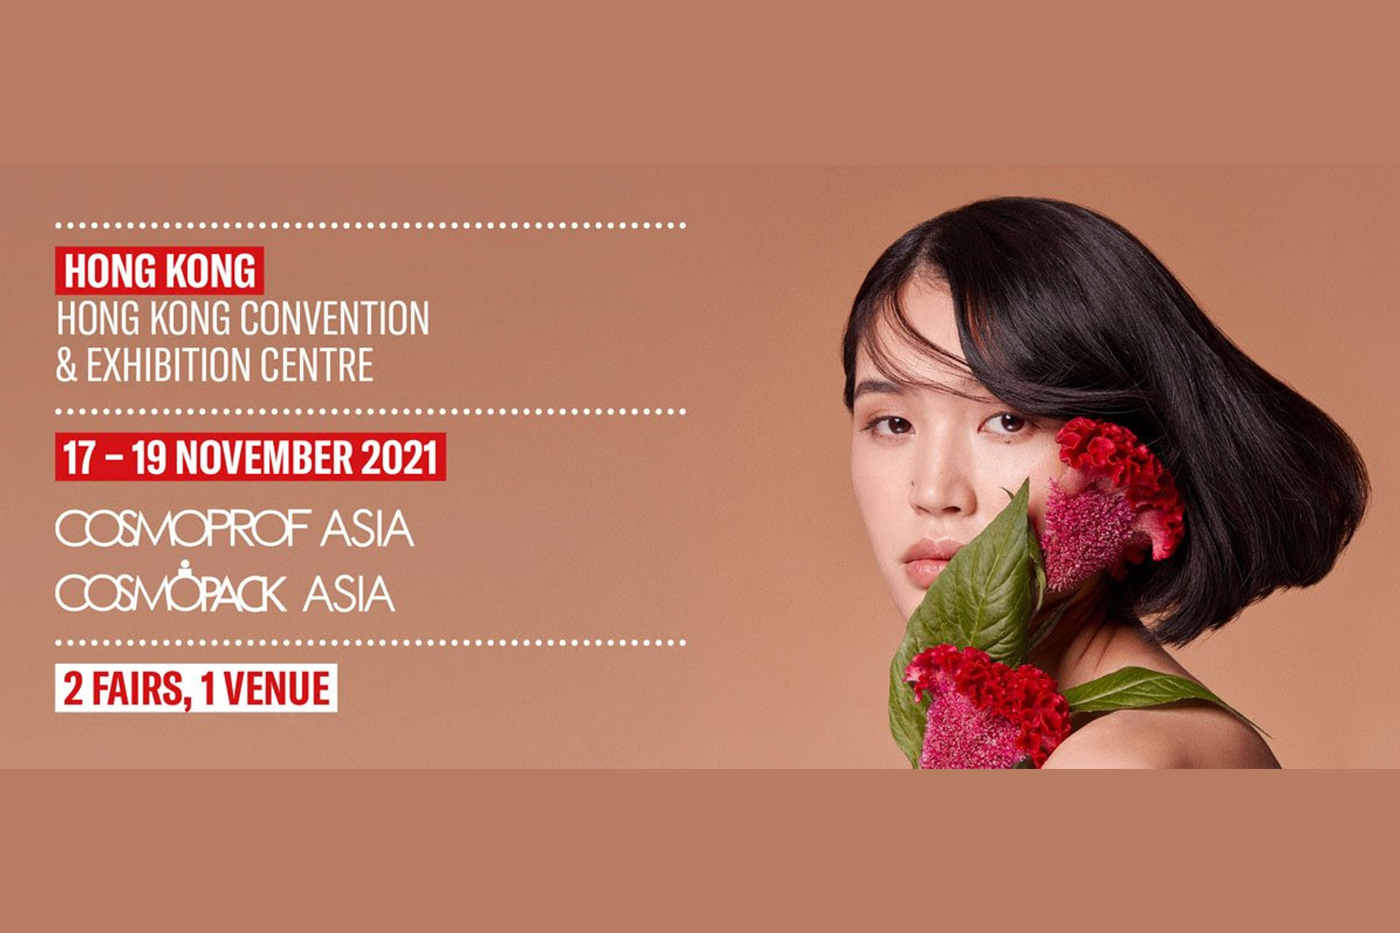 25th edition of Cosmoprof Asia to be held from November 17-19, 2021